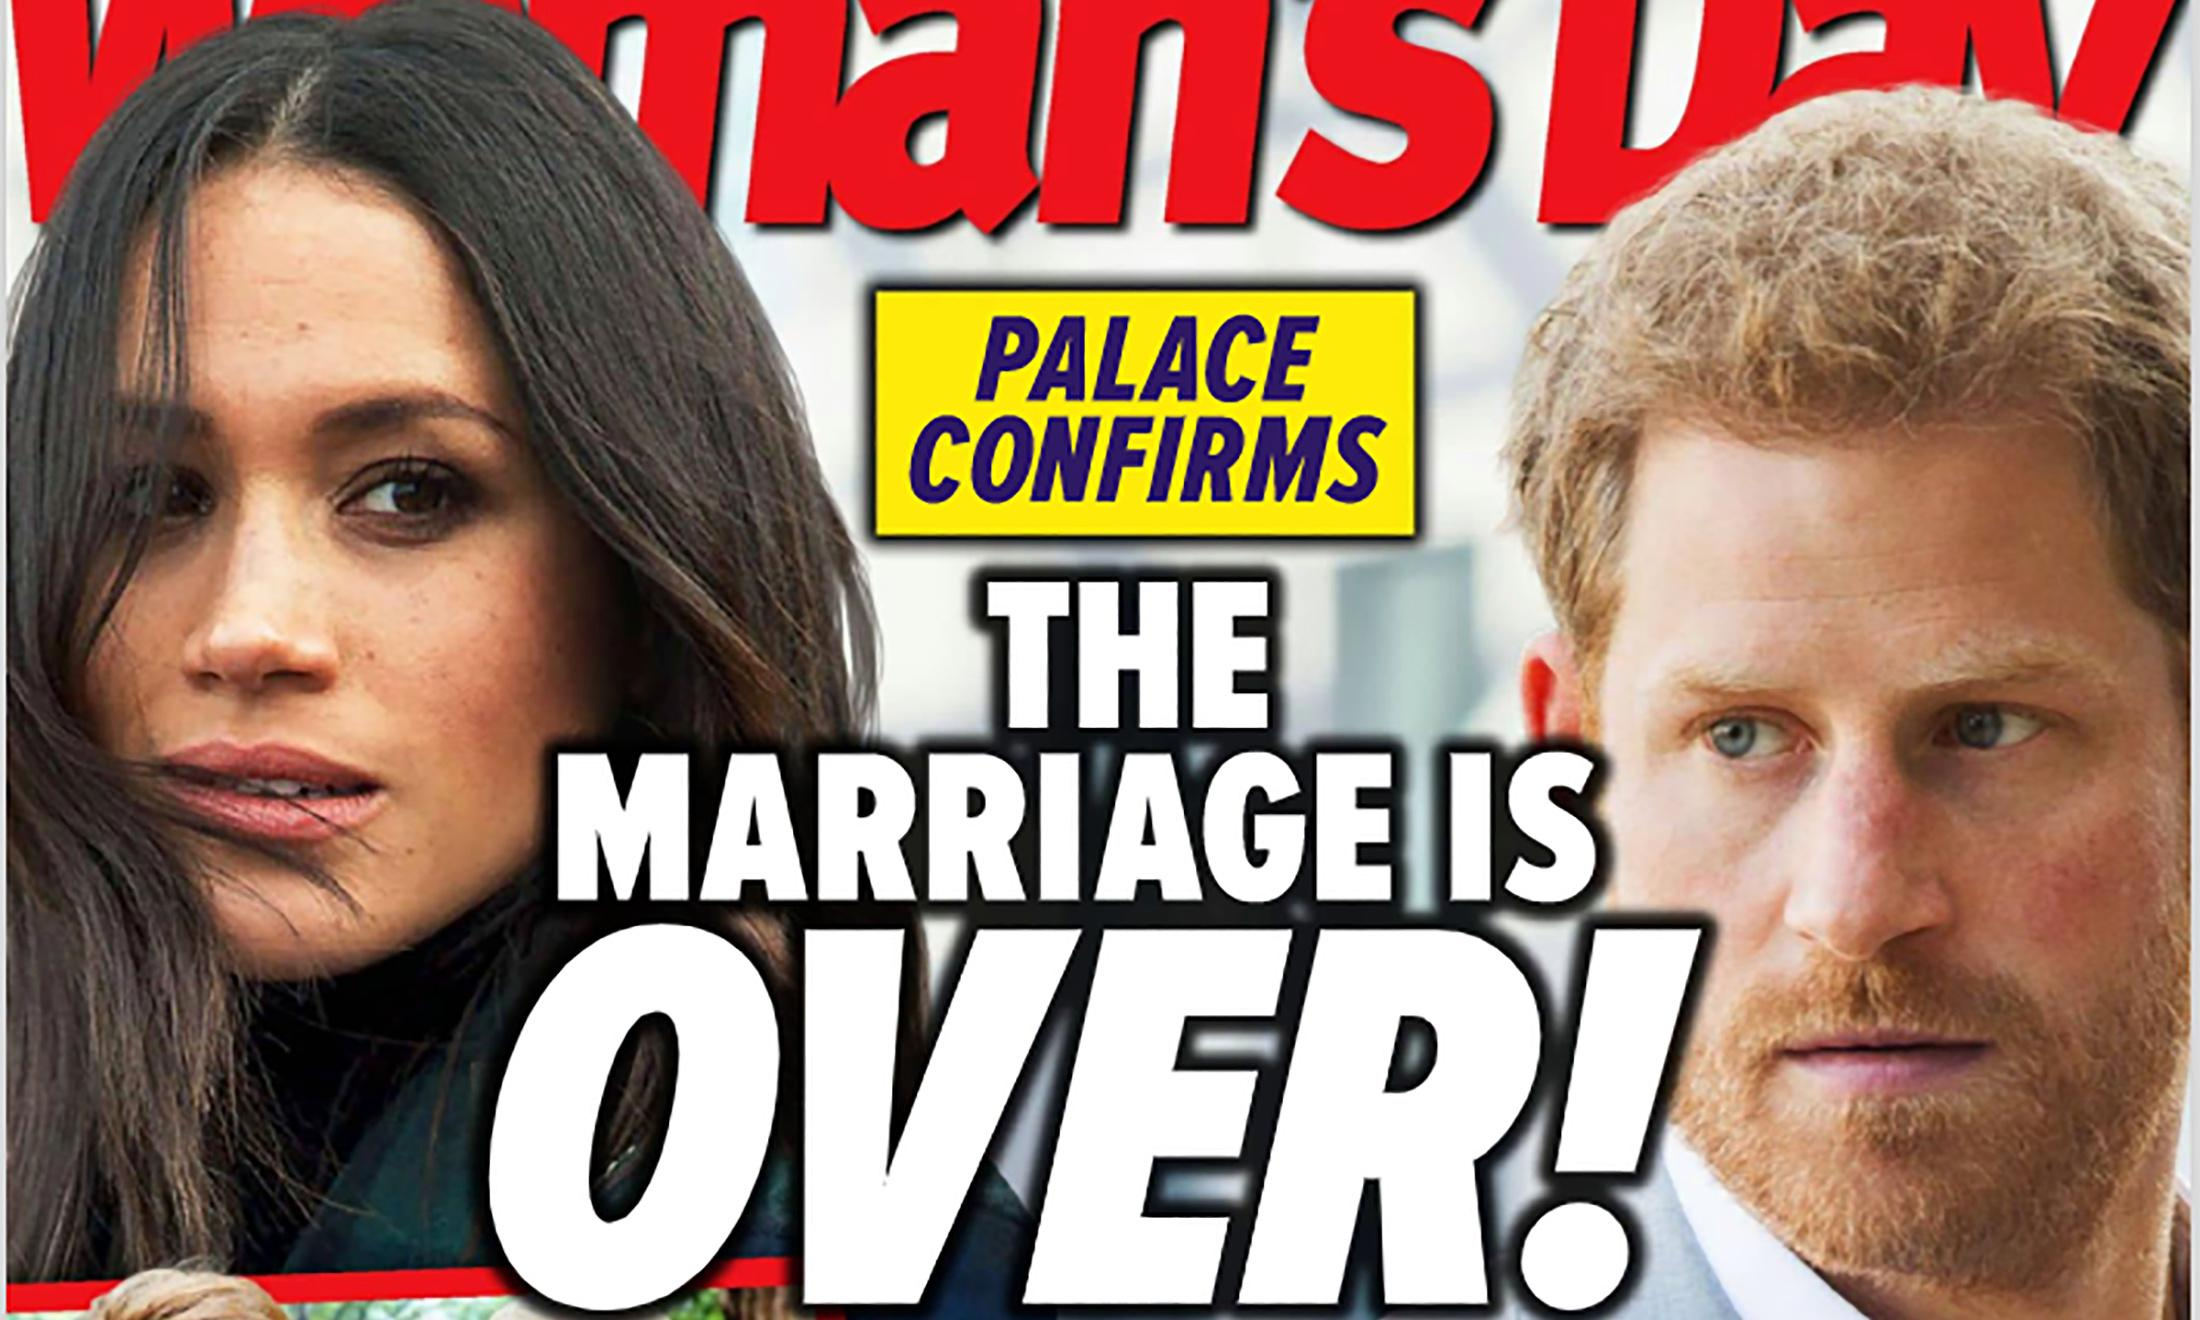 Woman's Day headline declaring Meghan and Harry's marriage over 'blatantly incorrect'